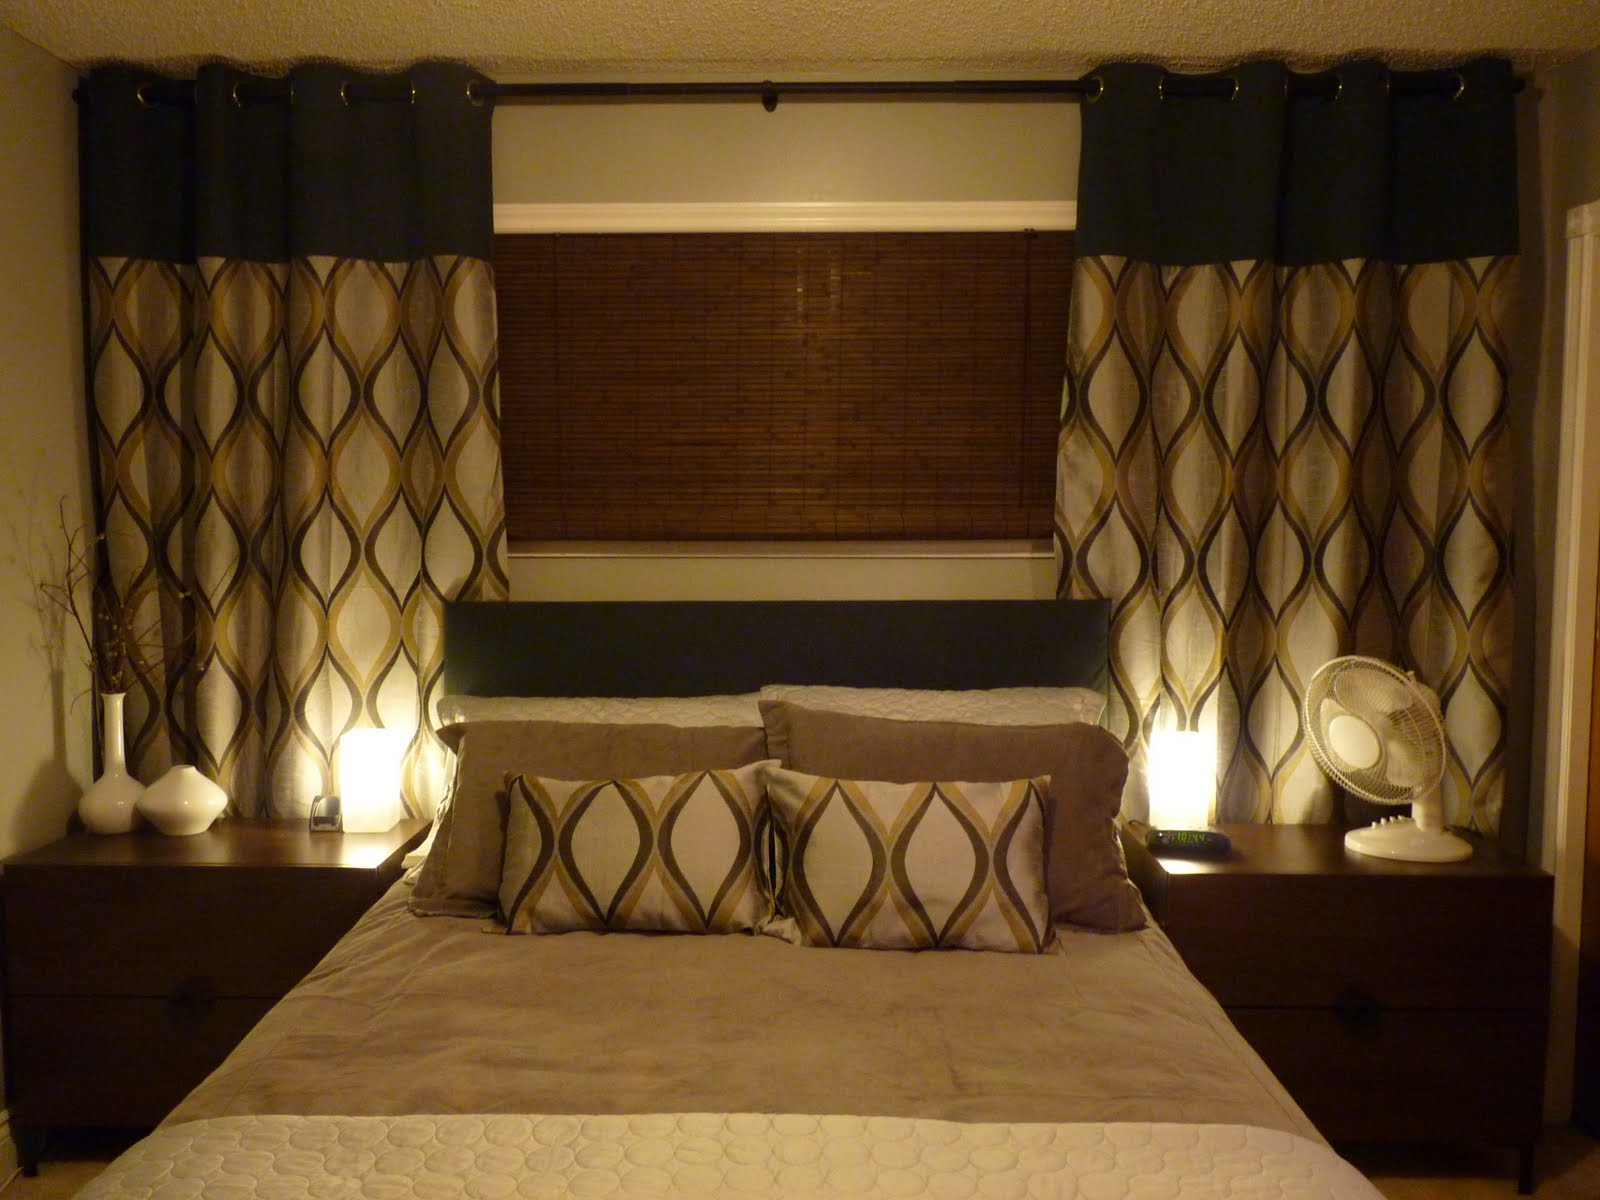 Top diy tutorials how to make your own headboard - Make your own headboard ...